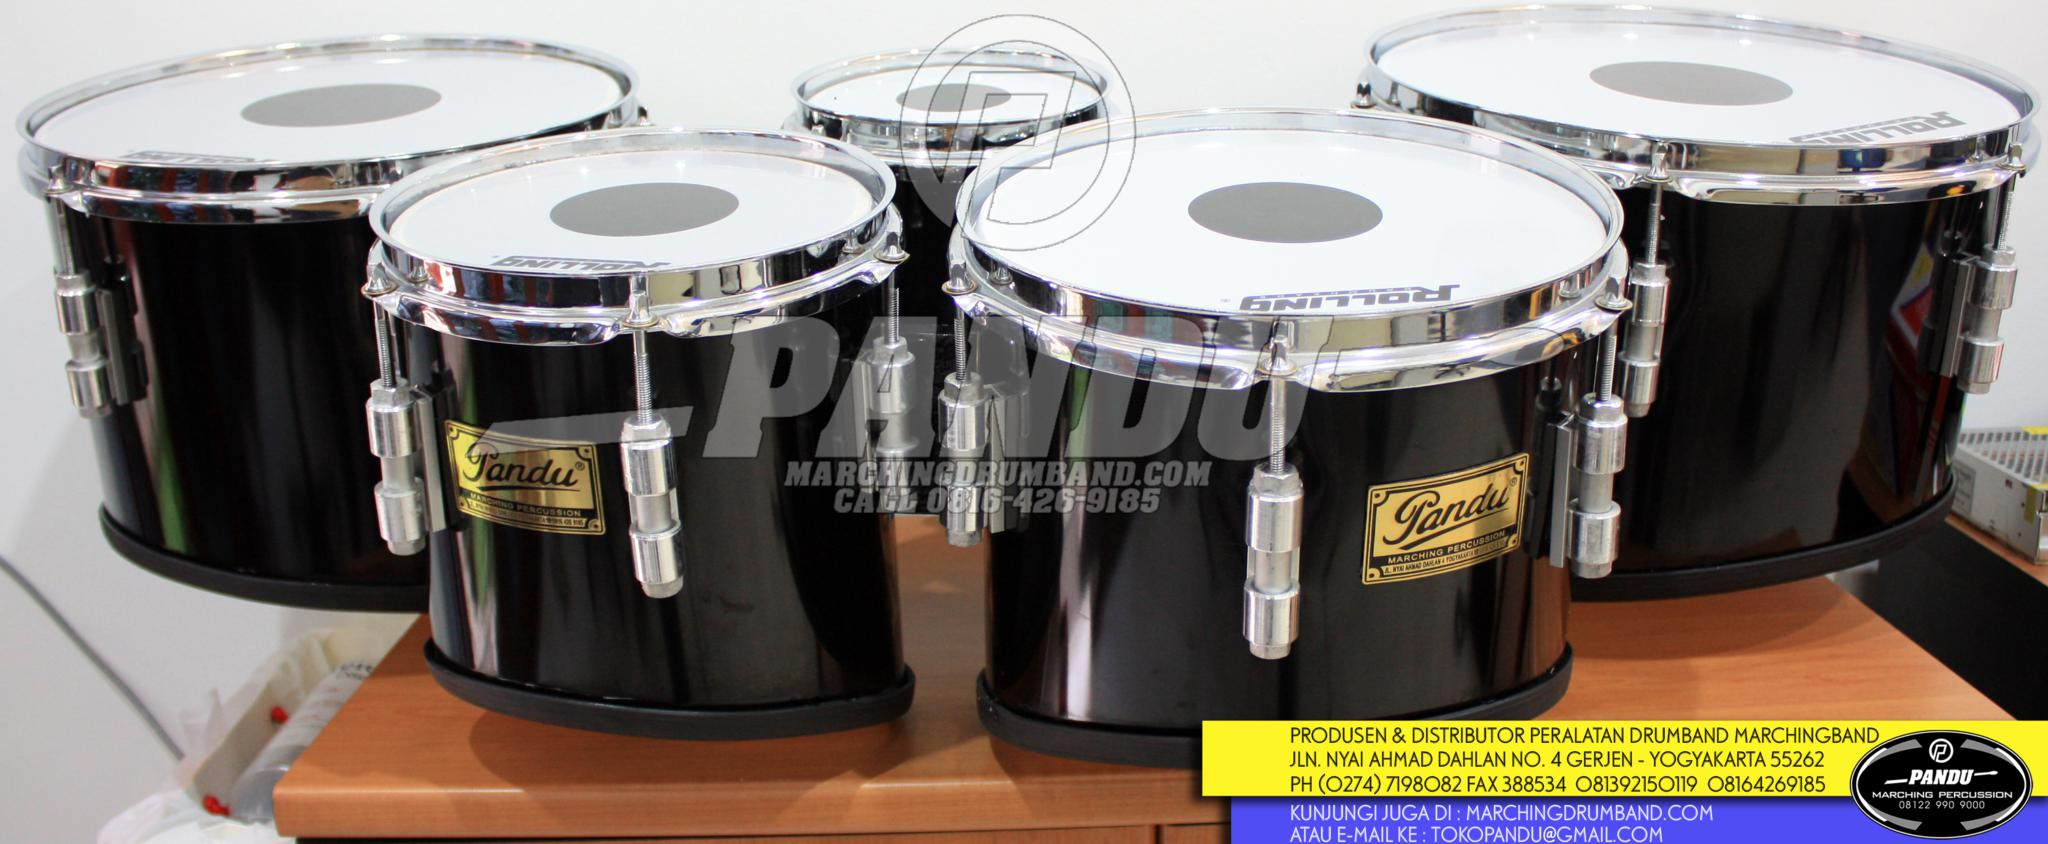 marchingband-full-hts-quintom-smp-sma-model-pearl_2048x844